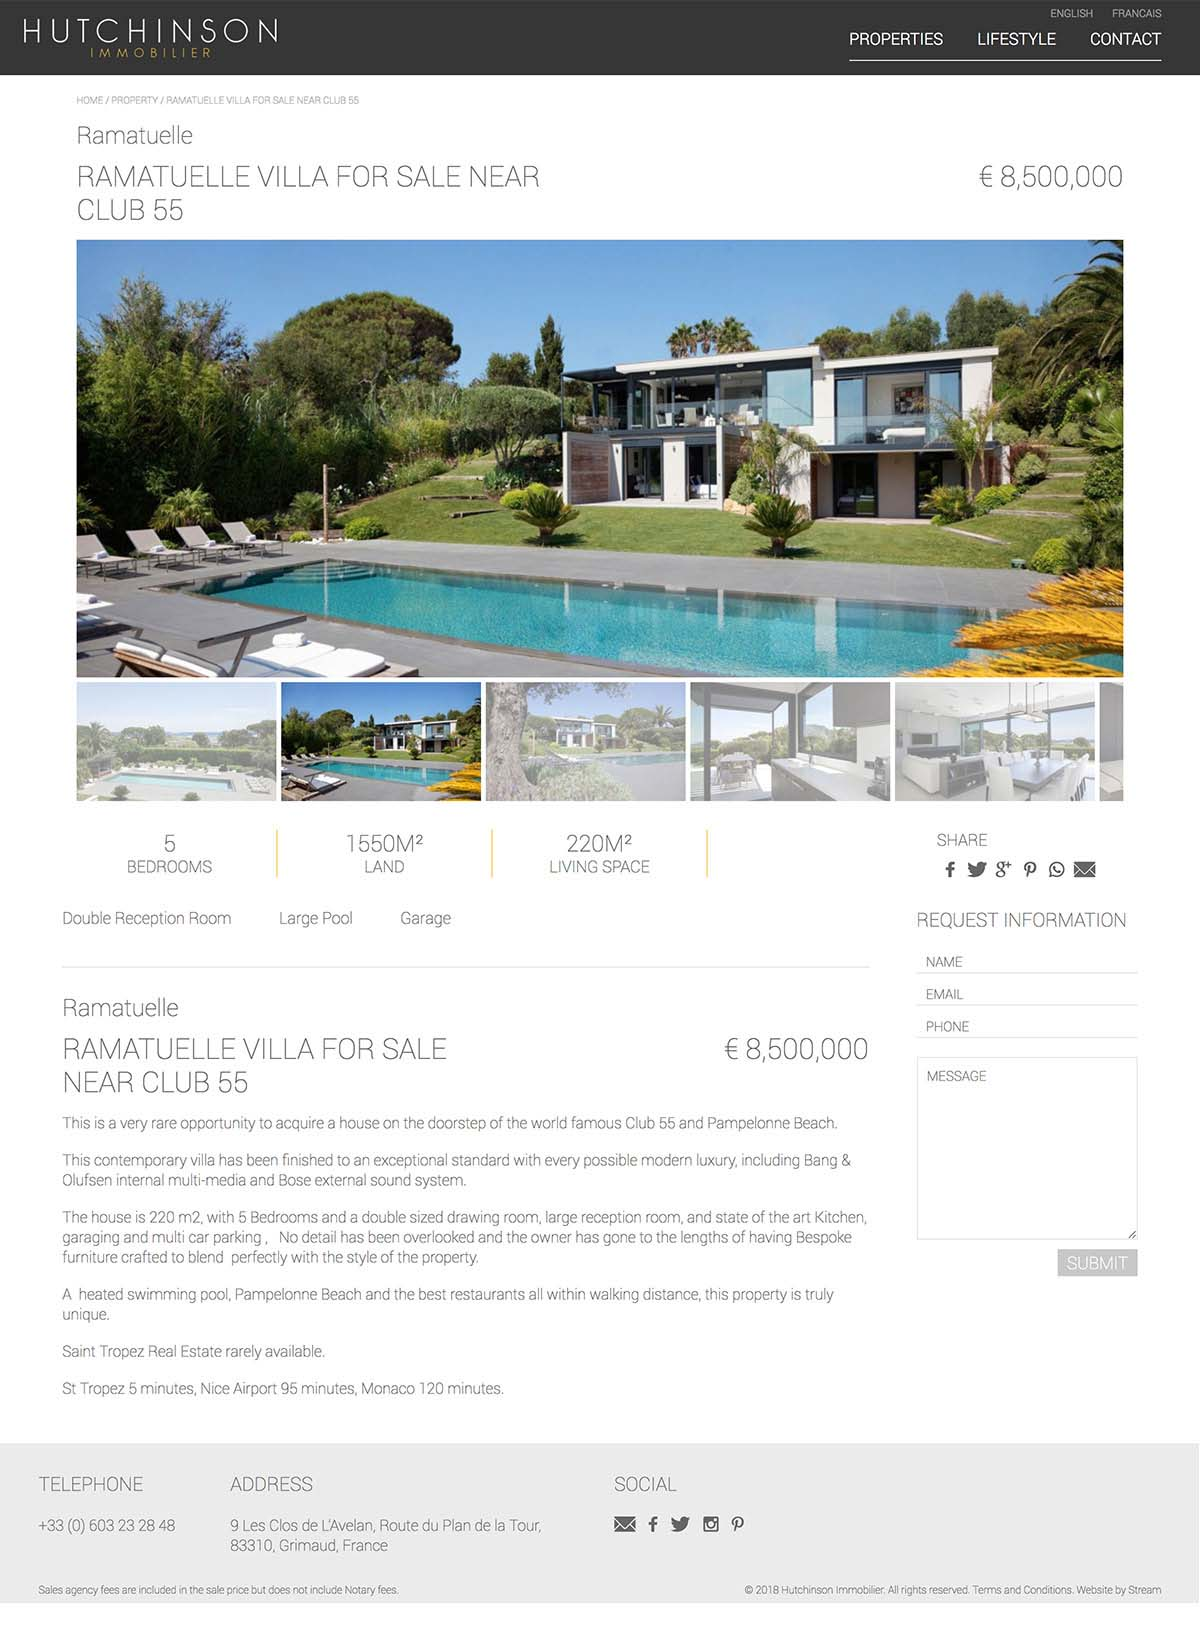 Hutchinson Immobilier property website